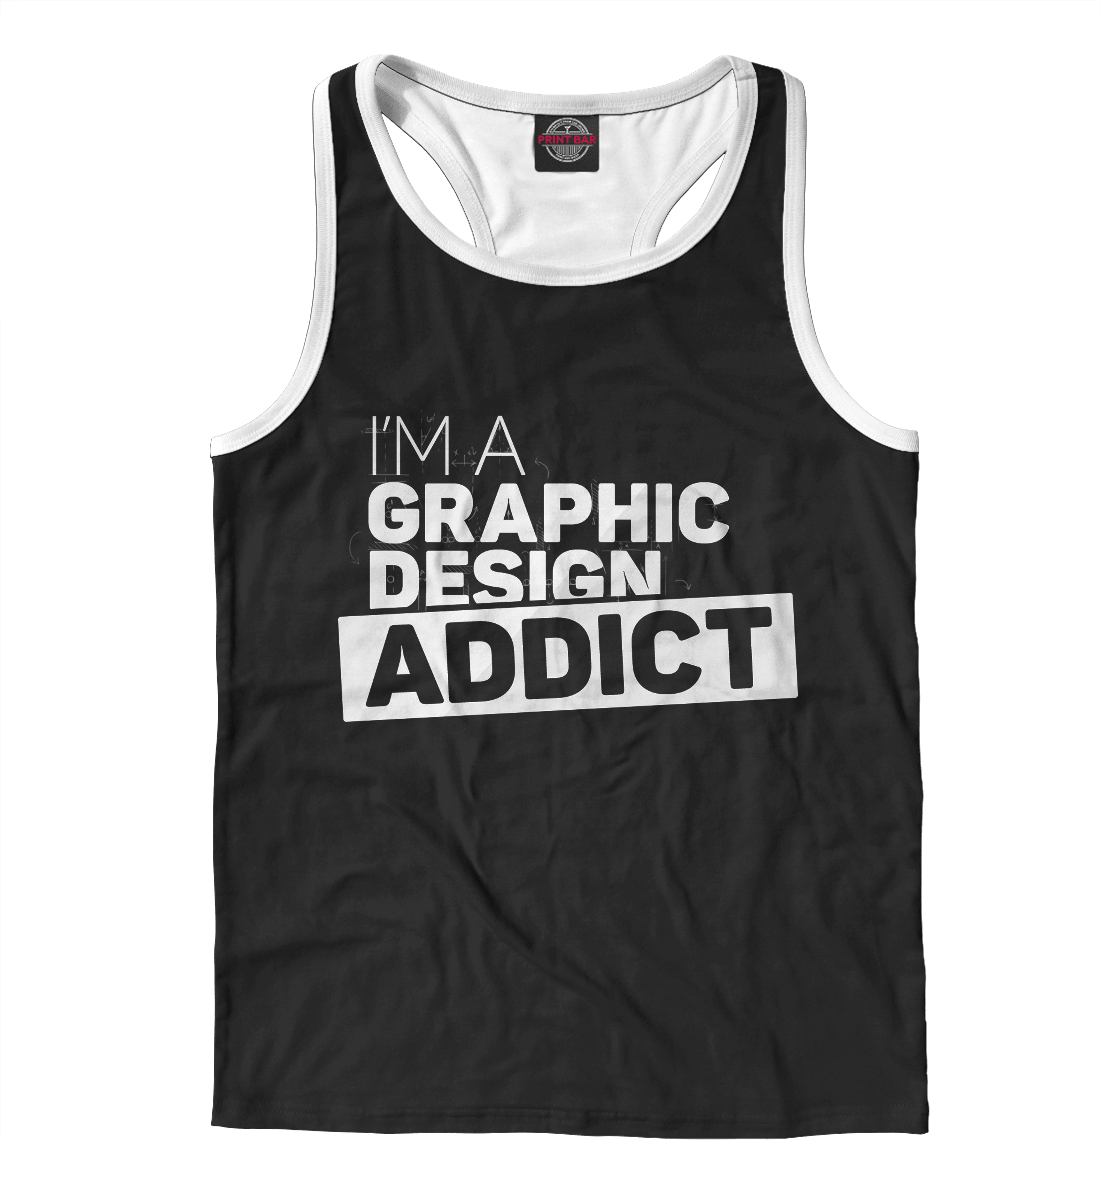 Graphic design addict